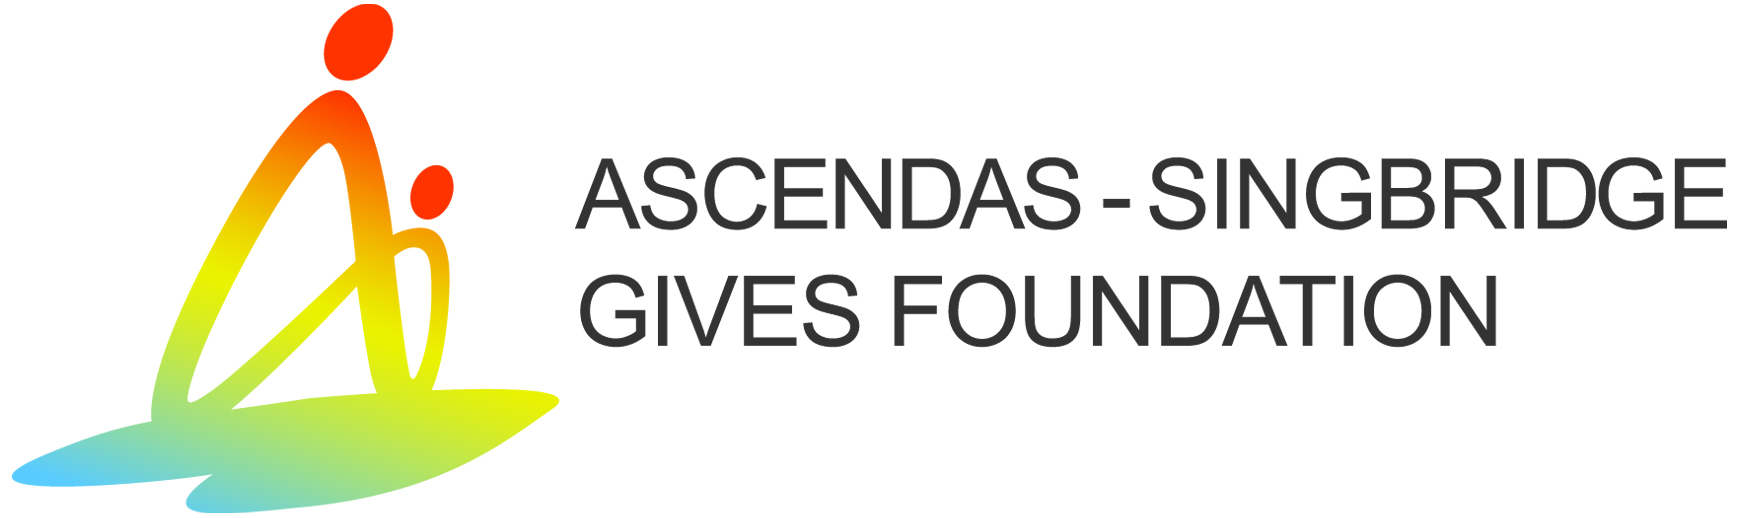 Ascendas-Singbridge Logo Foundation English